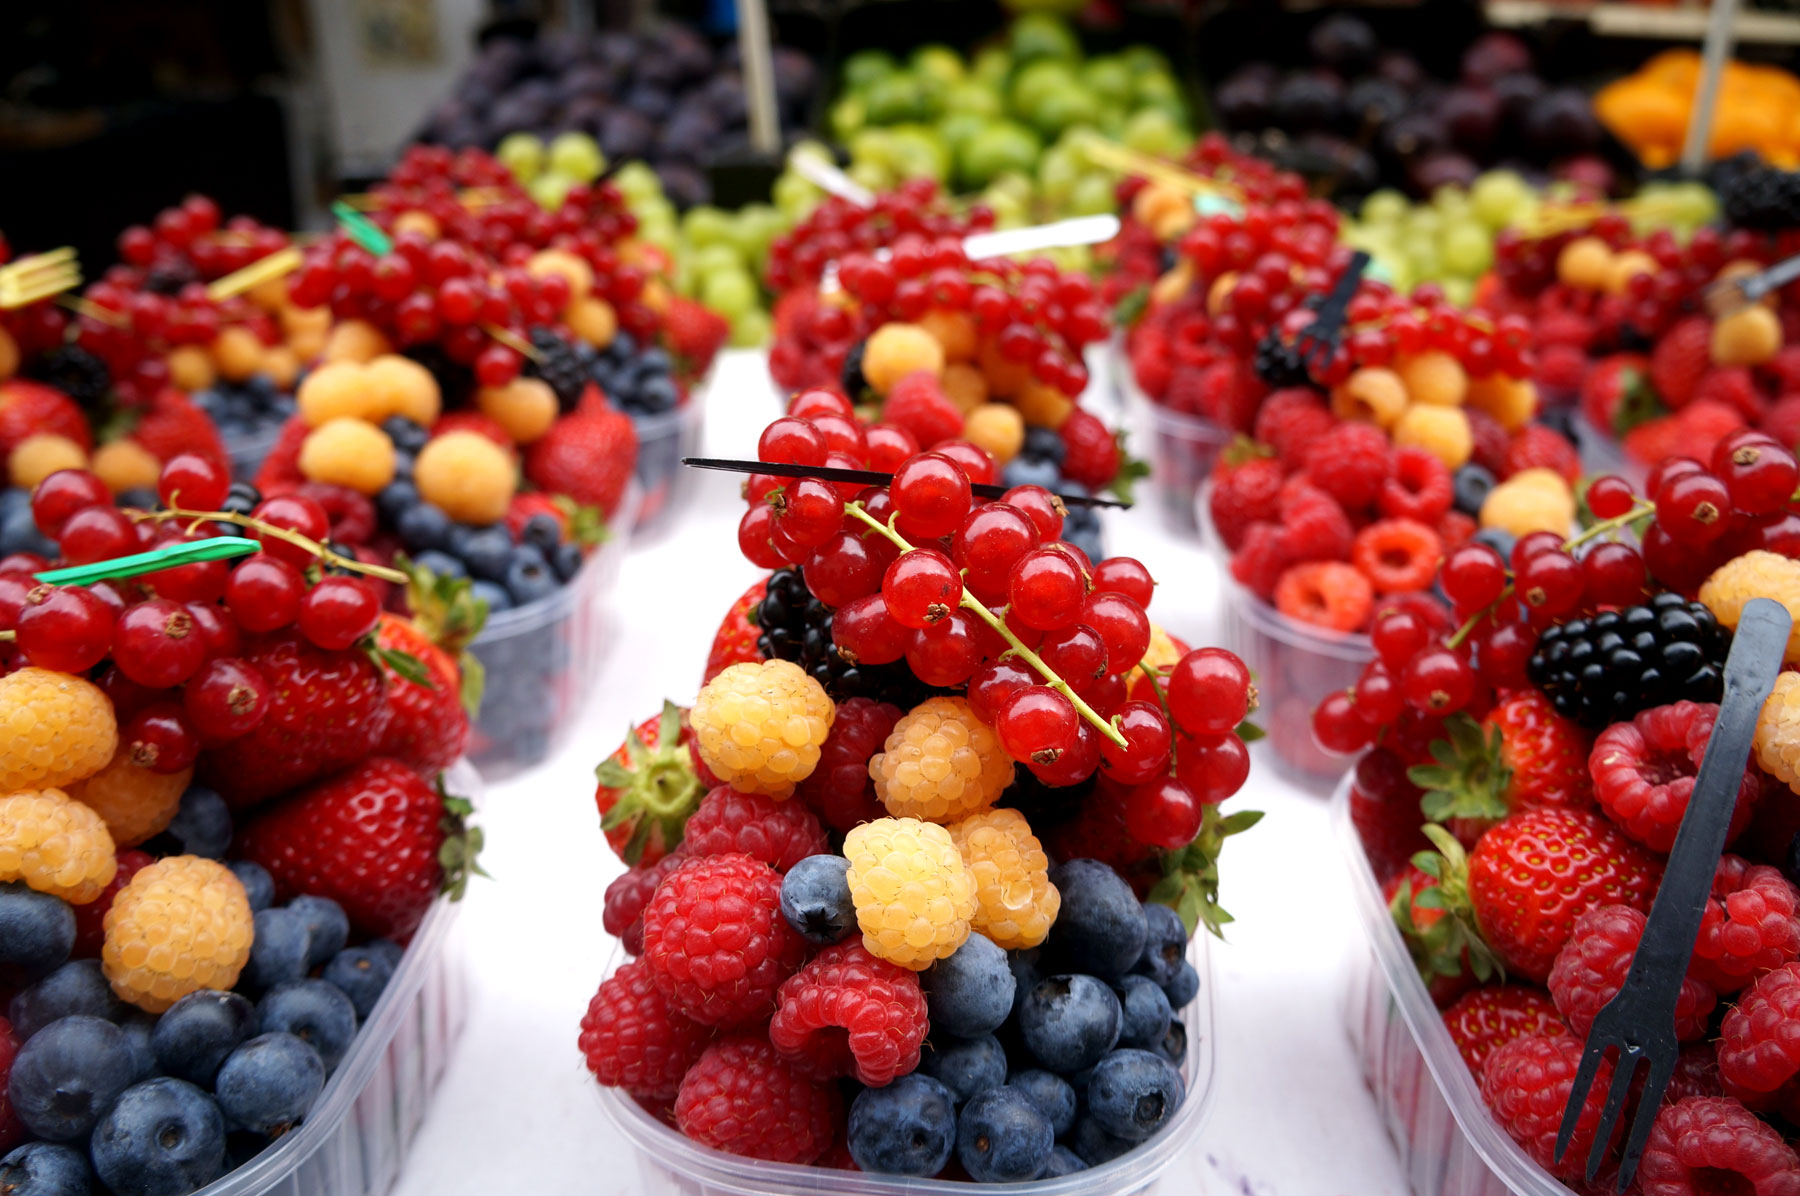 Baskets of assorted berries